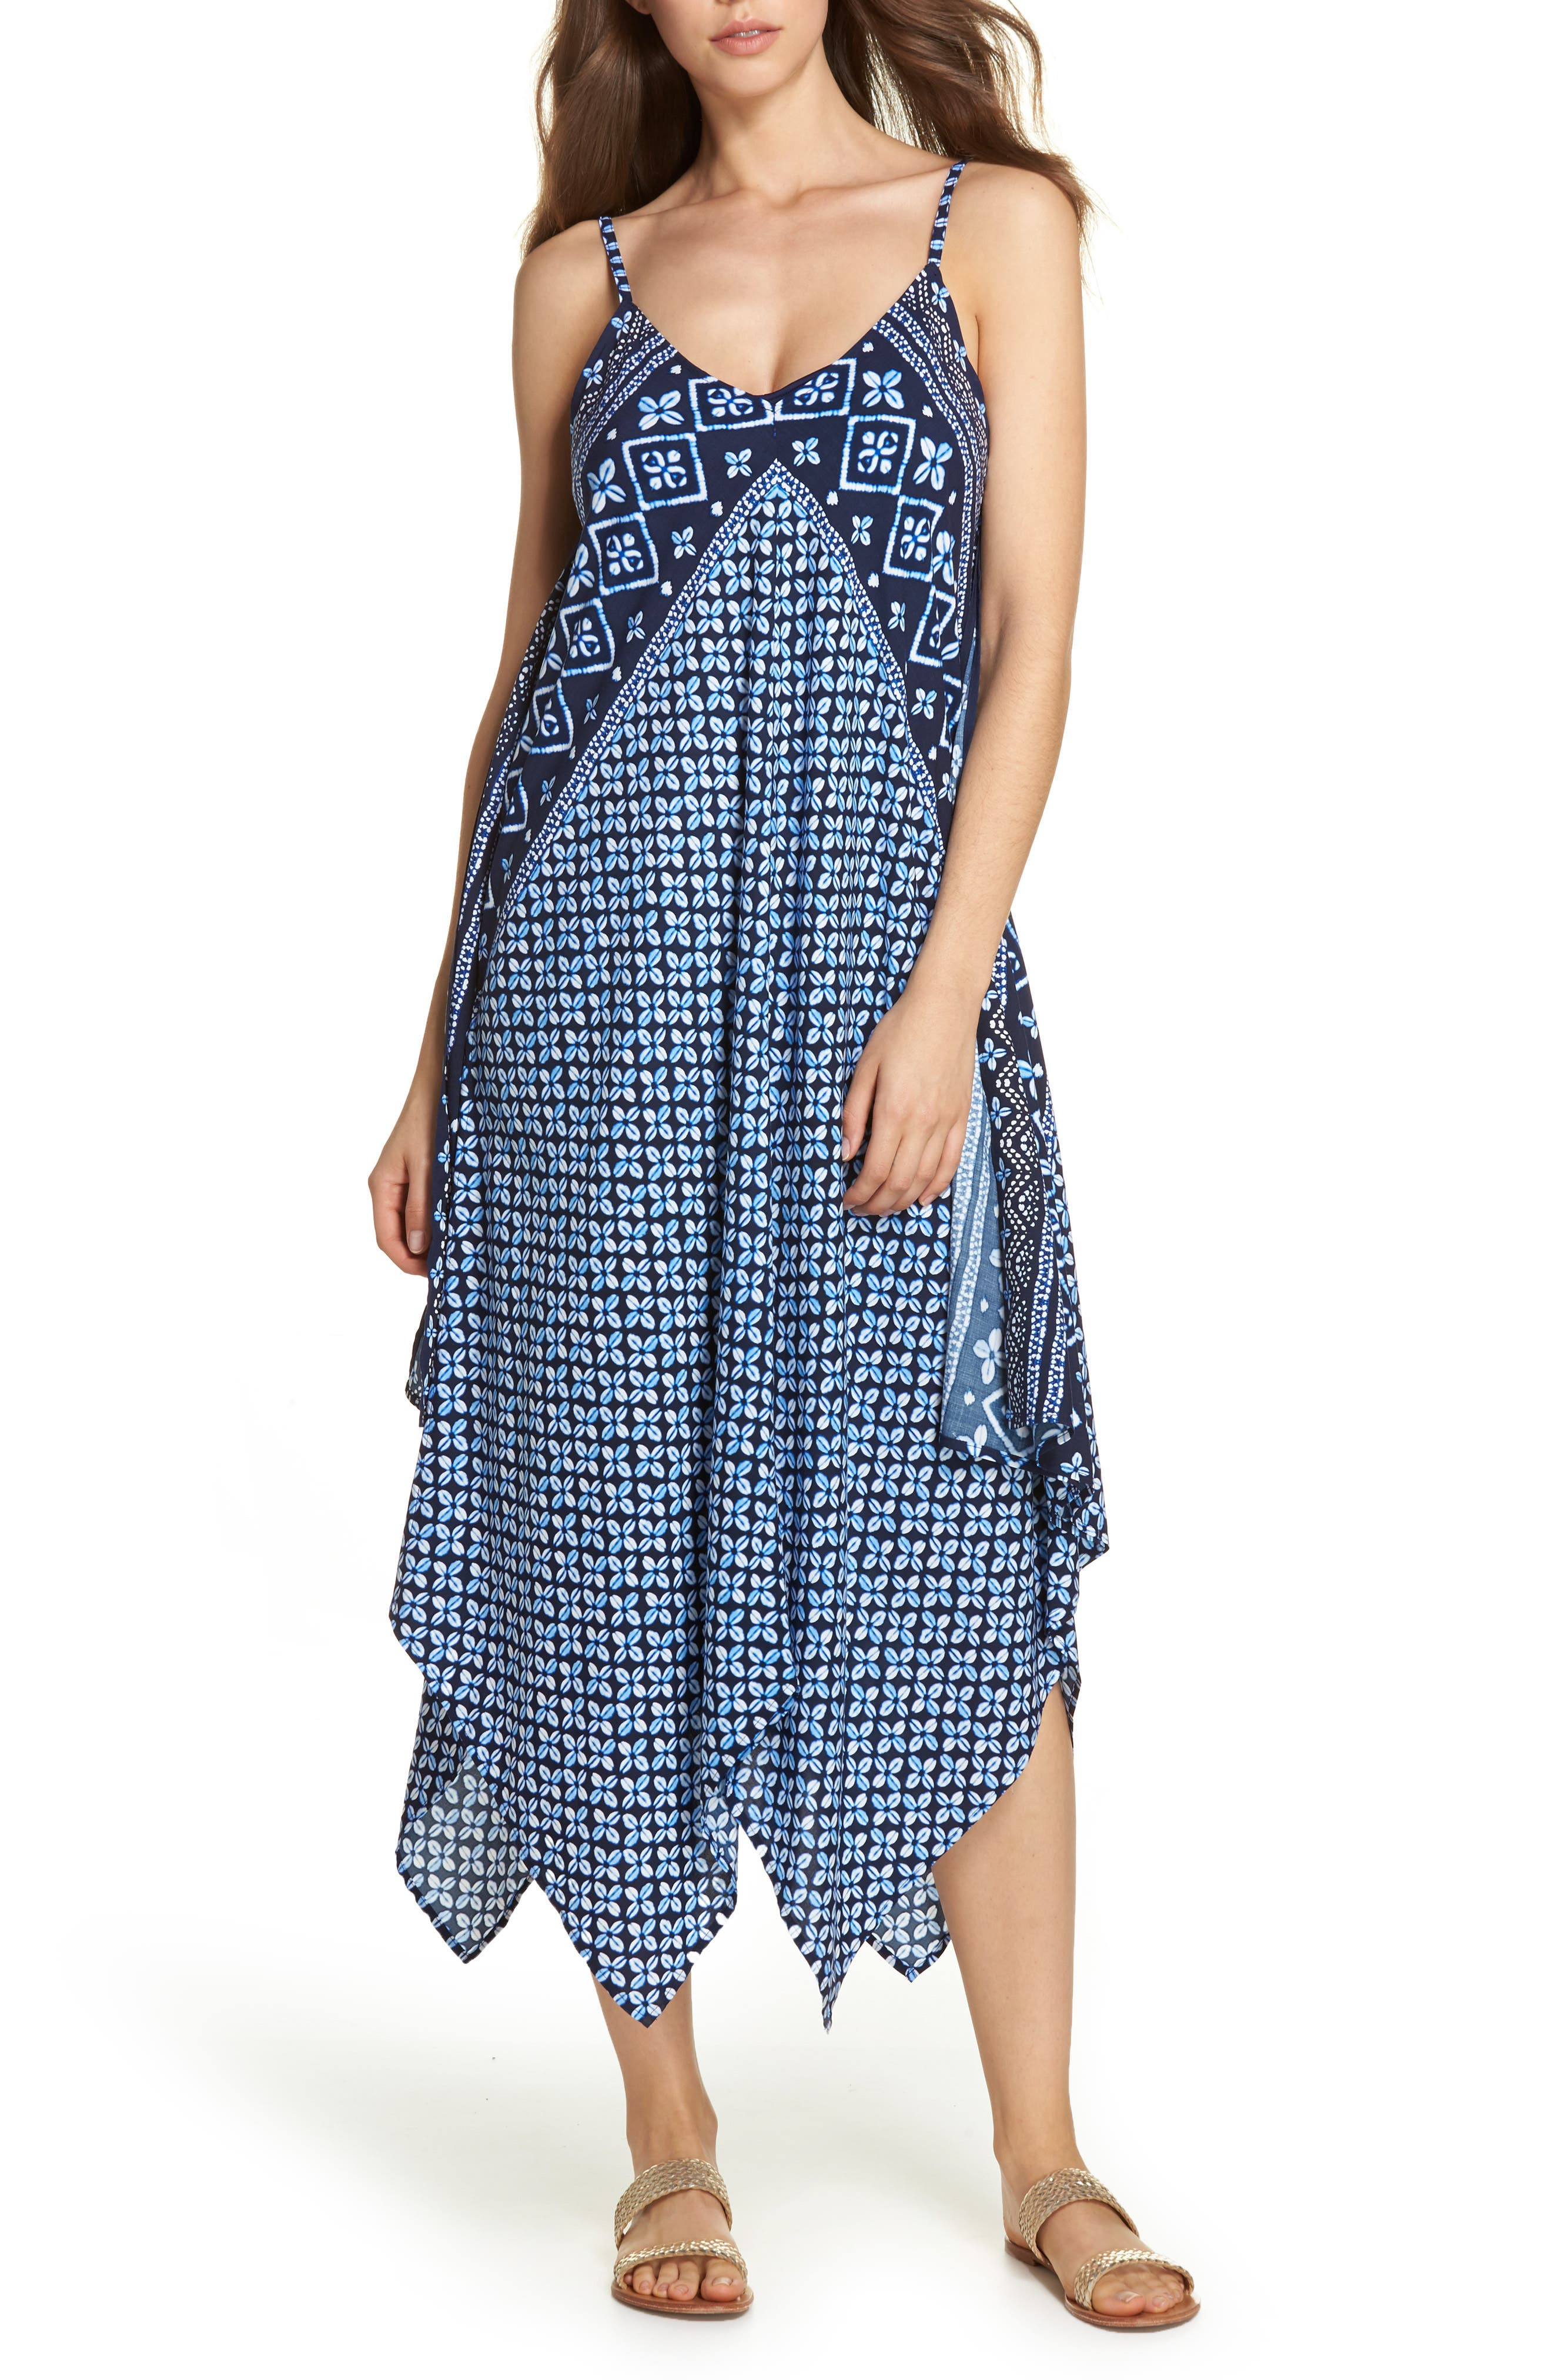 Indigo Cowrie Diamonds Cover-Up Dress,                             Main thumbnail 1, color,                             Mare